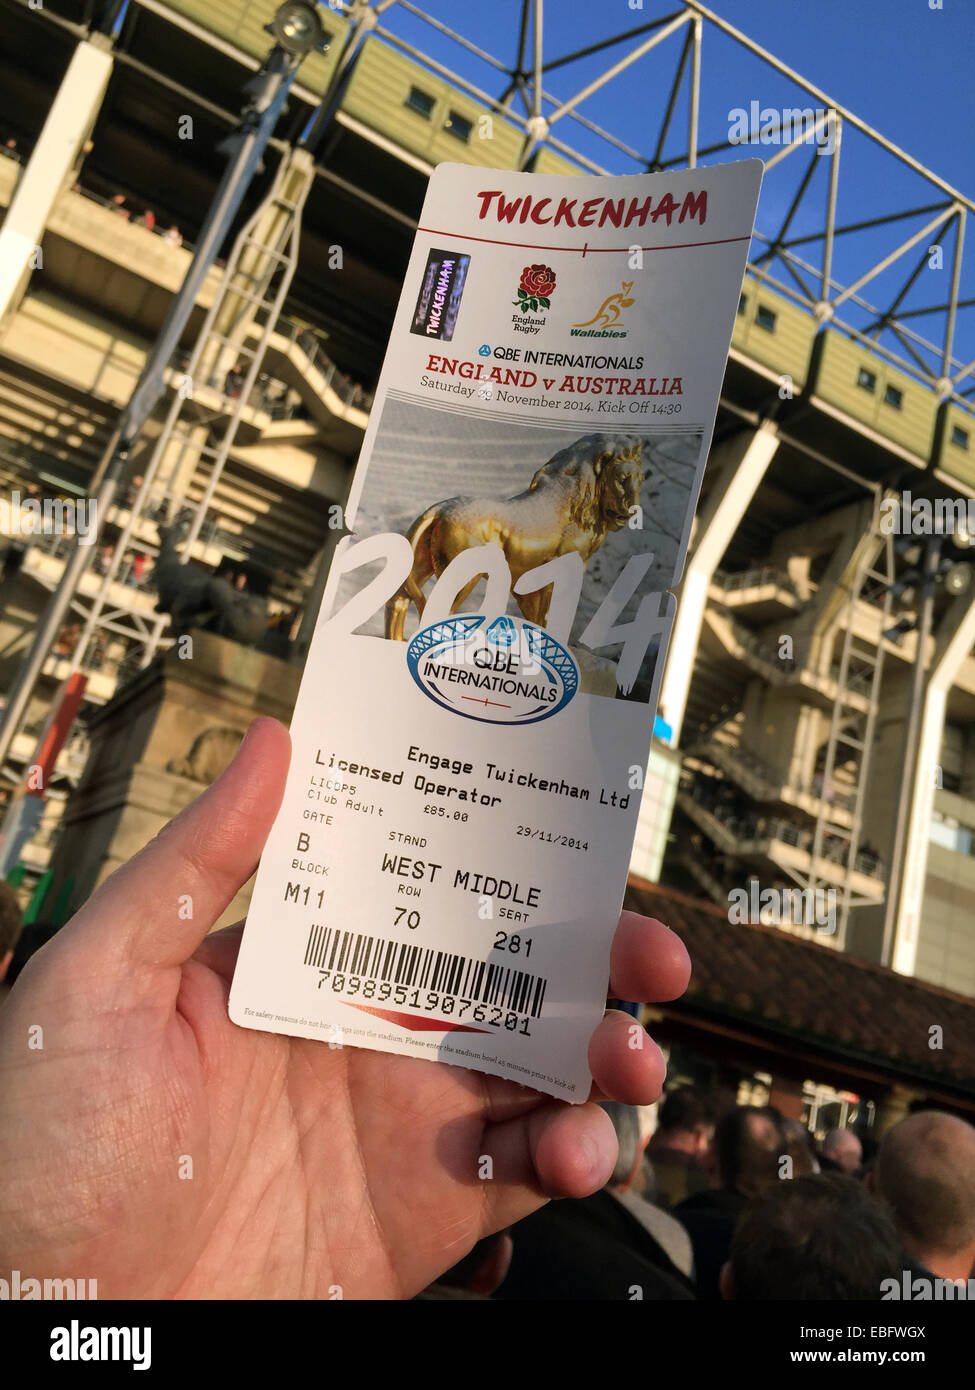 team,sport,stadium,programme,program,hospitality,stadia,stadium,ticket,hospitality,visit,trip,business,home,of,the,RFU,championship,champion,UK,GB,Holding,an,entrance,ticket,up,at,hand,barcode,security,features,fraud,counter,counterfraud,stubhub,stub,hub,ticketmaster,secondhand,tickets,at,inflated,gotonysmith,qbe,6nations,6,nations,six,tournament,sporting,venue,champions,united,Kingdom,Great,Britain,second,hand,illegal,prices,expensive,counterfeit,engvAus,England,Australia,stand,in,background,Buy Pictures of,Buy Images Of